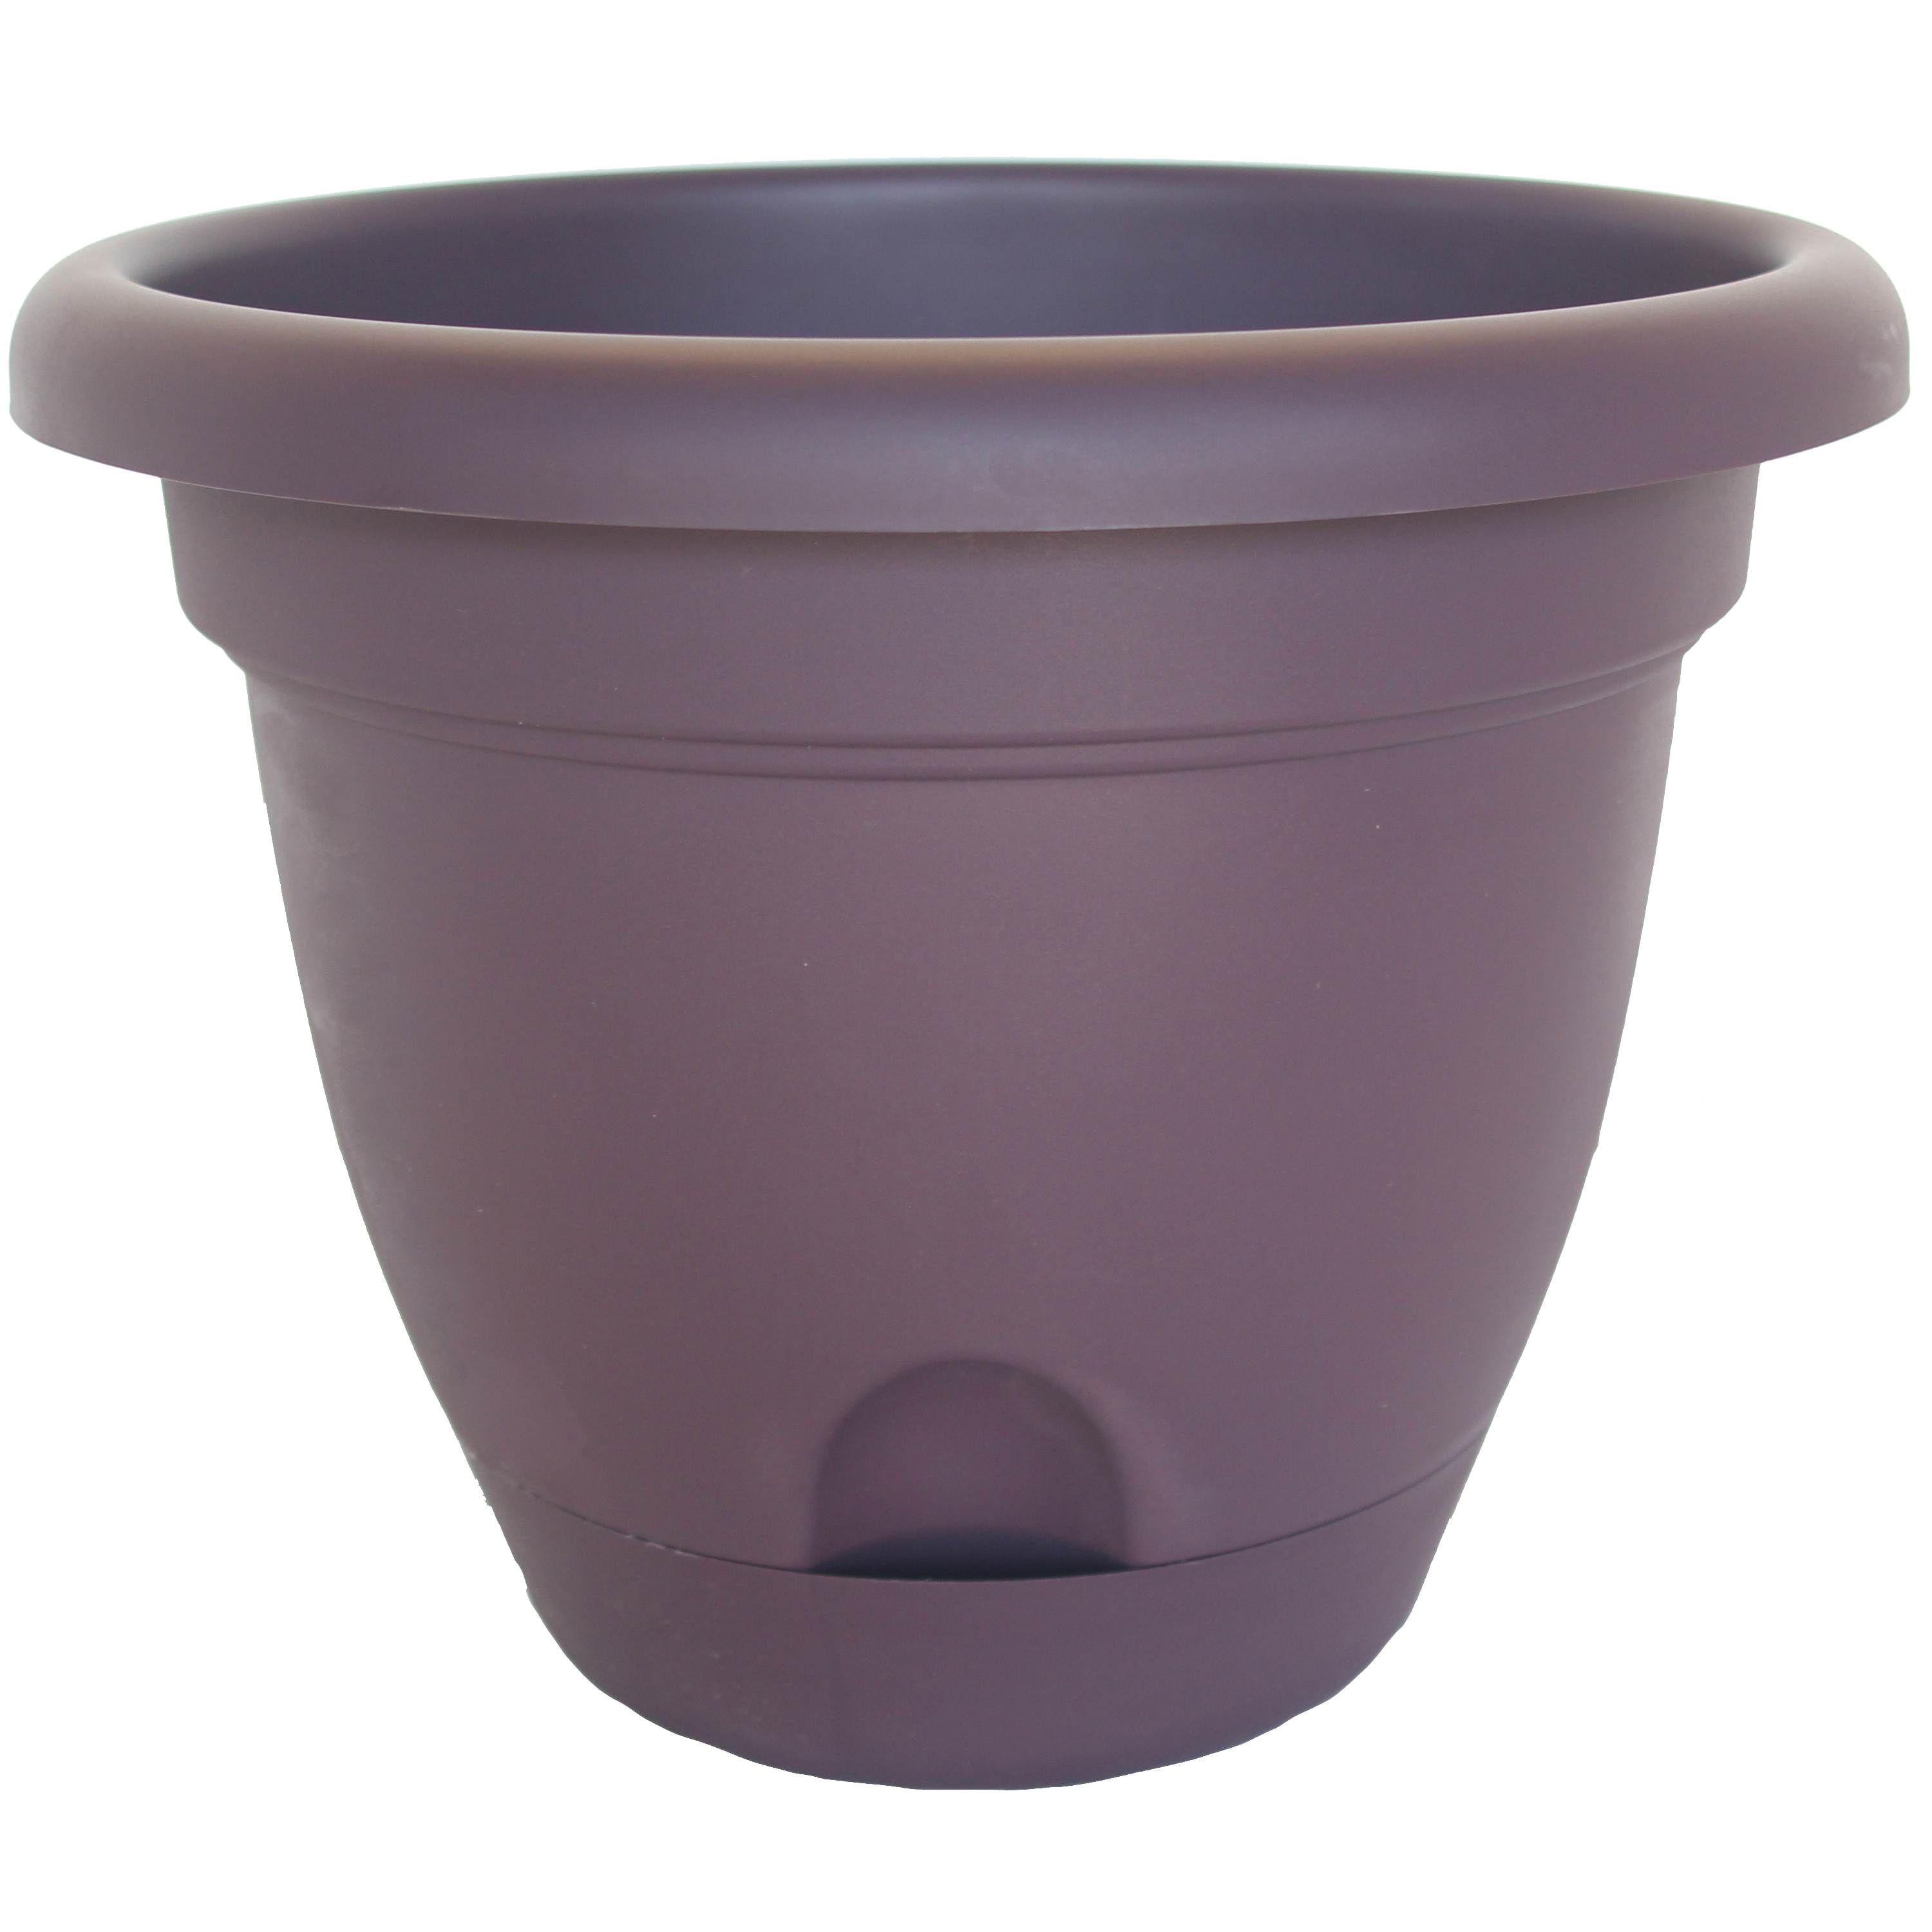 Picture of Bloem Lucca LP1056 Planter, 8.8 in W, Polypropylene, Exotica